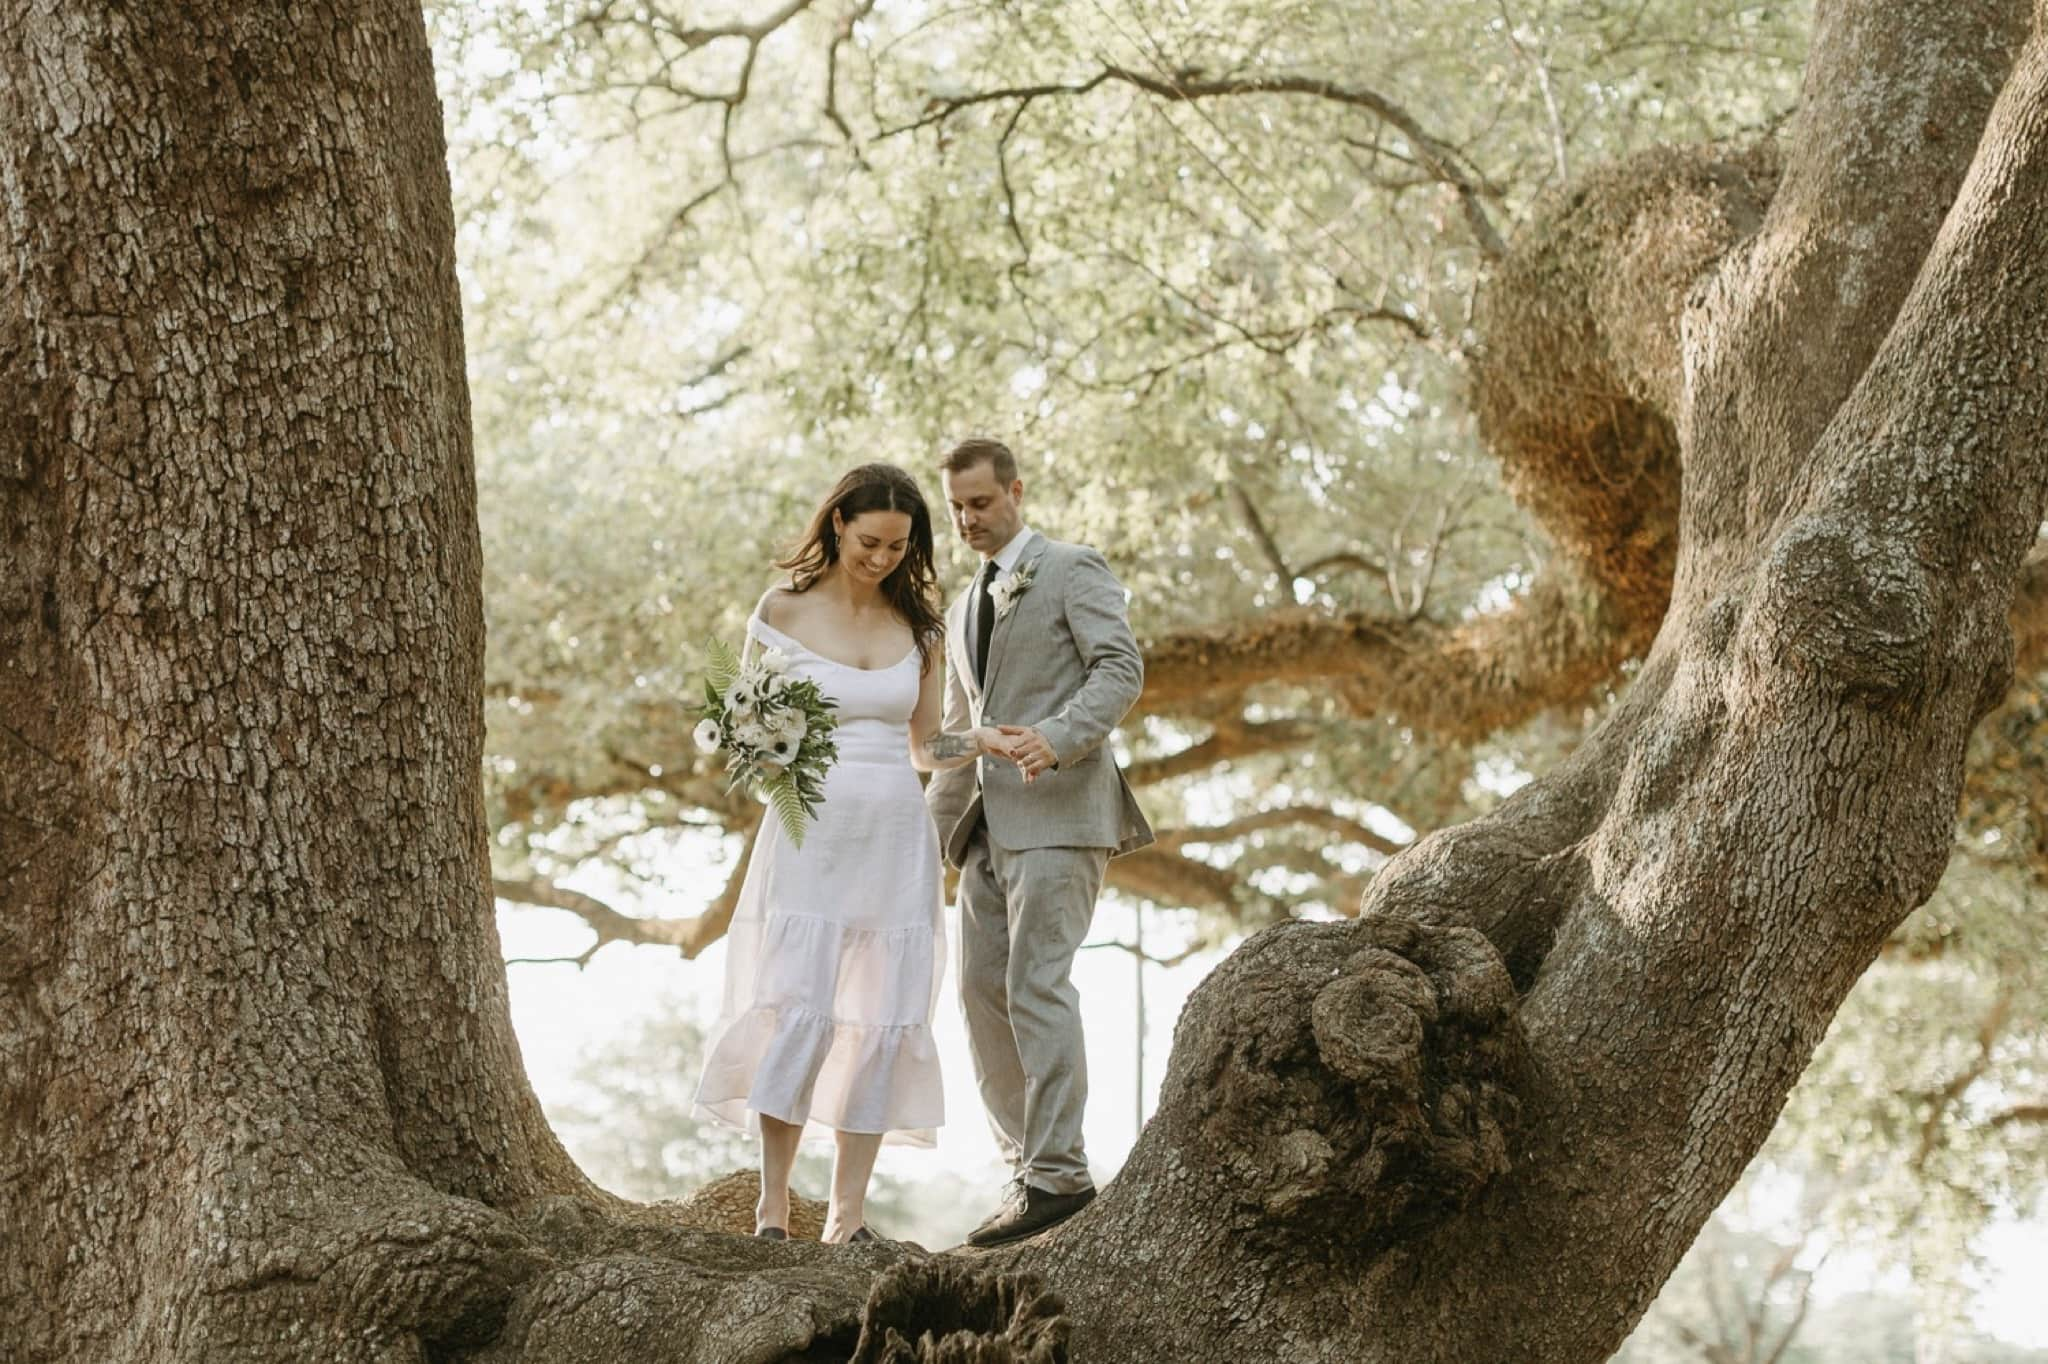 New Orleans City Park Elopement